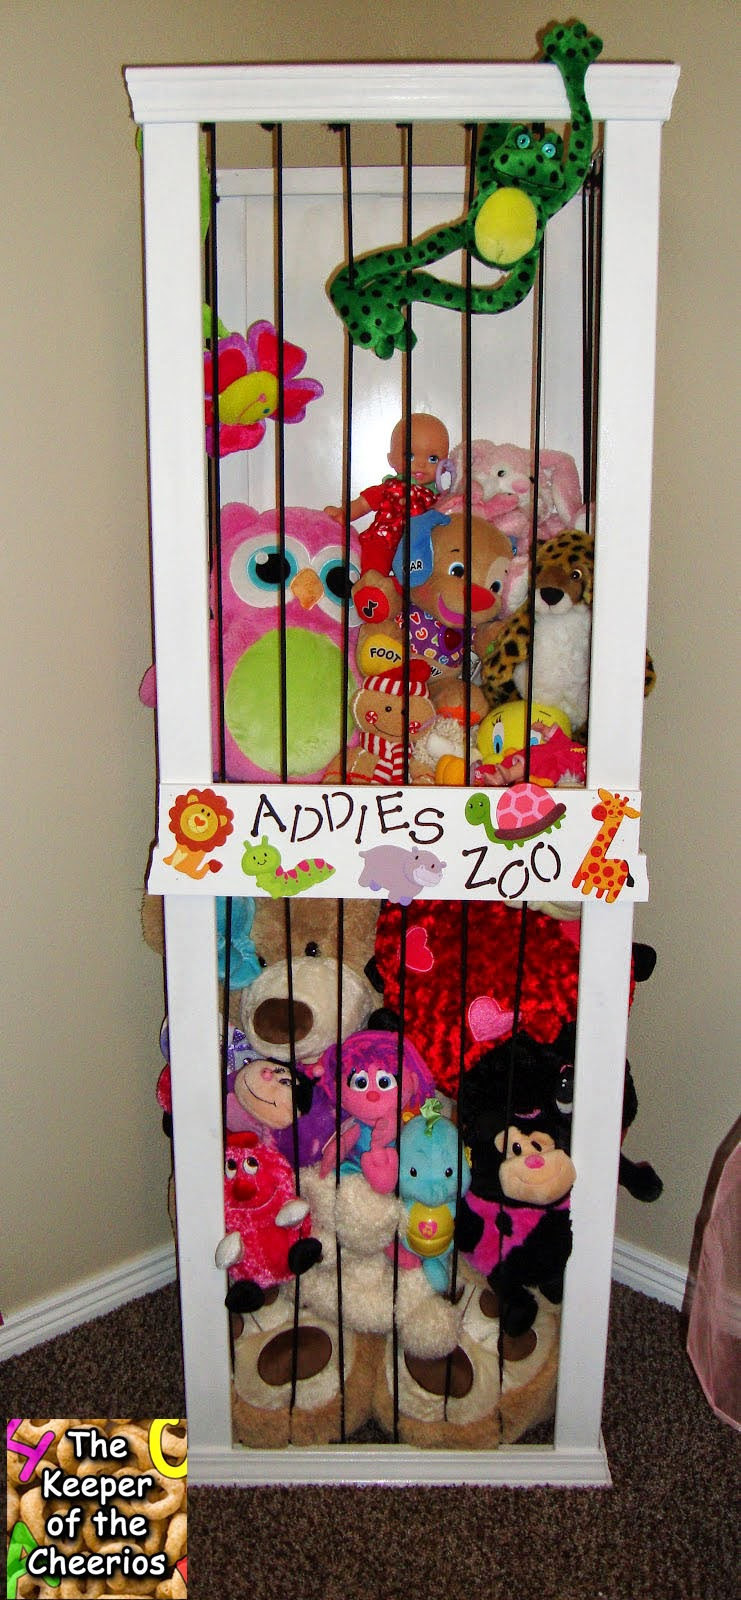 Best ideas about Stuffed Animal Storage Ideas . Save or Pin 10 toy storage solutions Now.